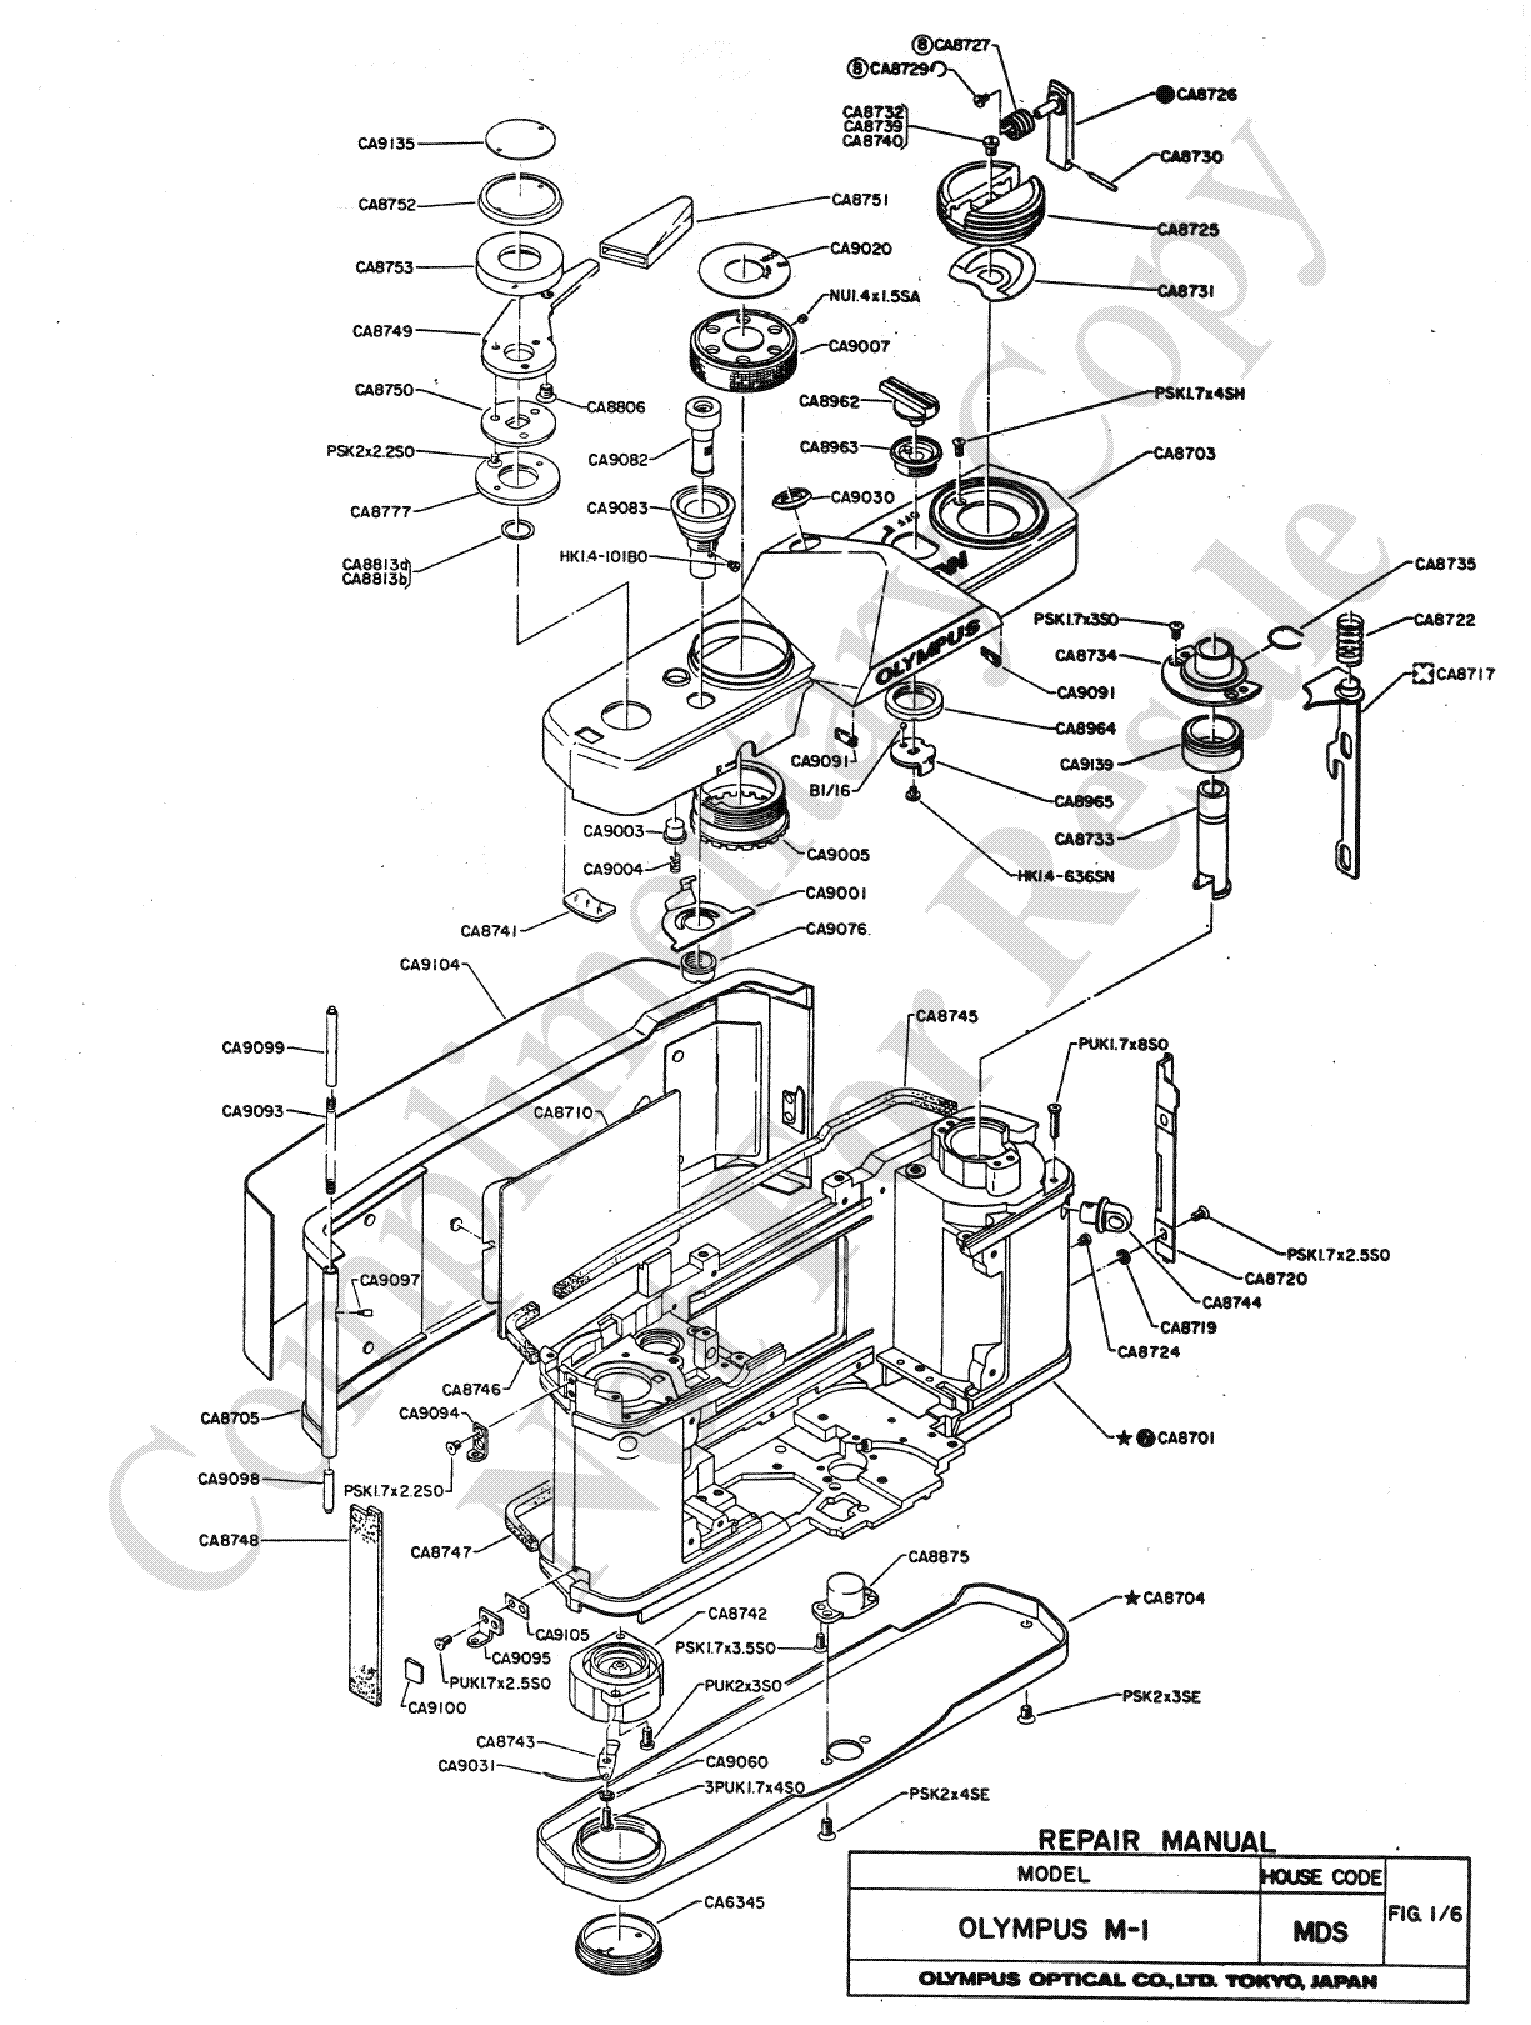 Toyota Solara Wire Diagram